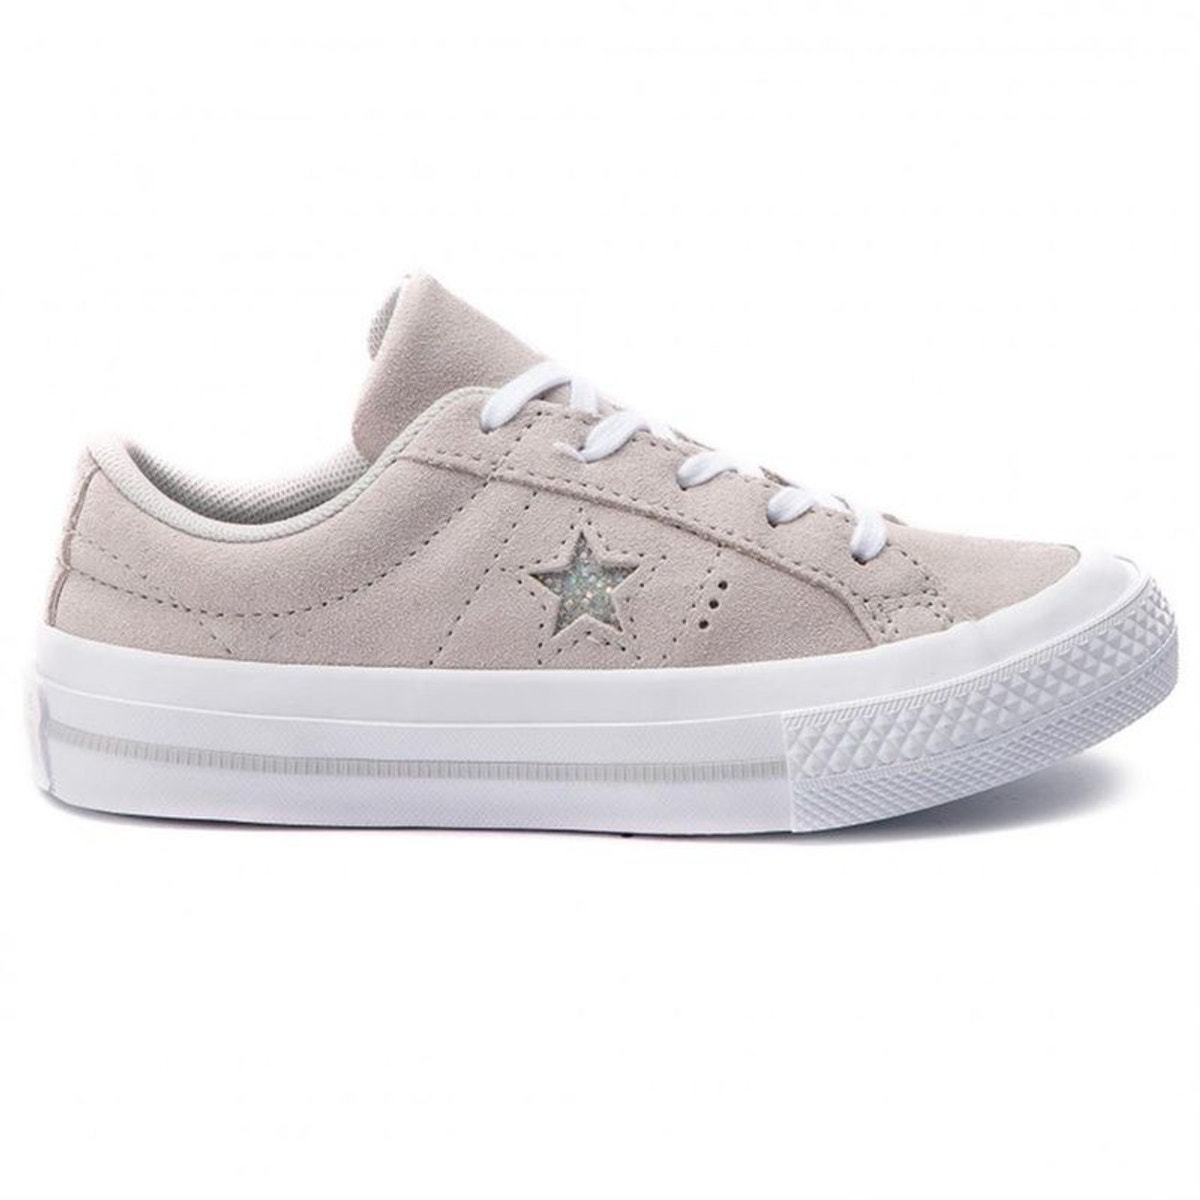 converse fille taille 28